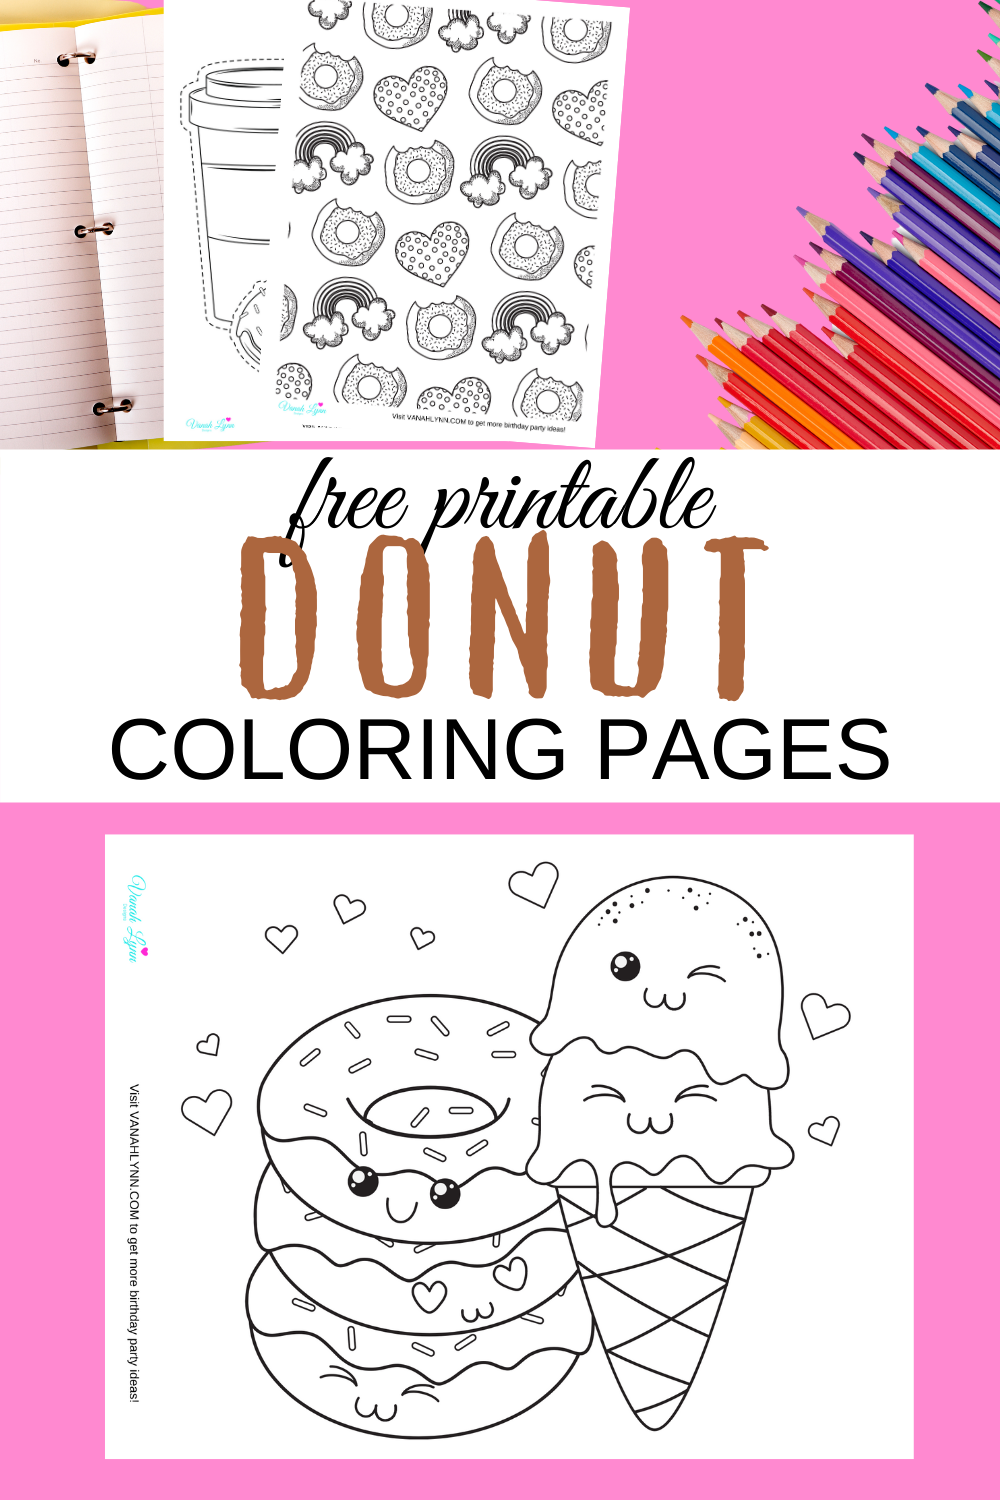 cute and fun donut coloring pages for a 1st birthday party